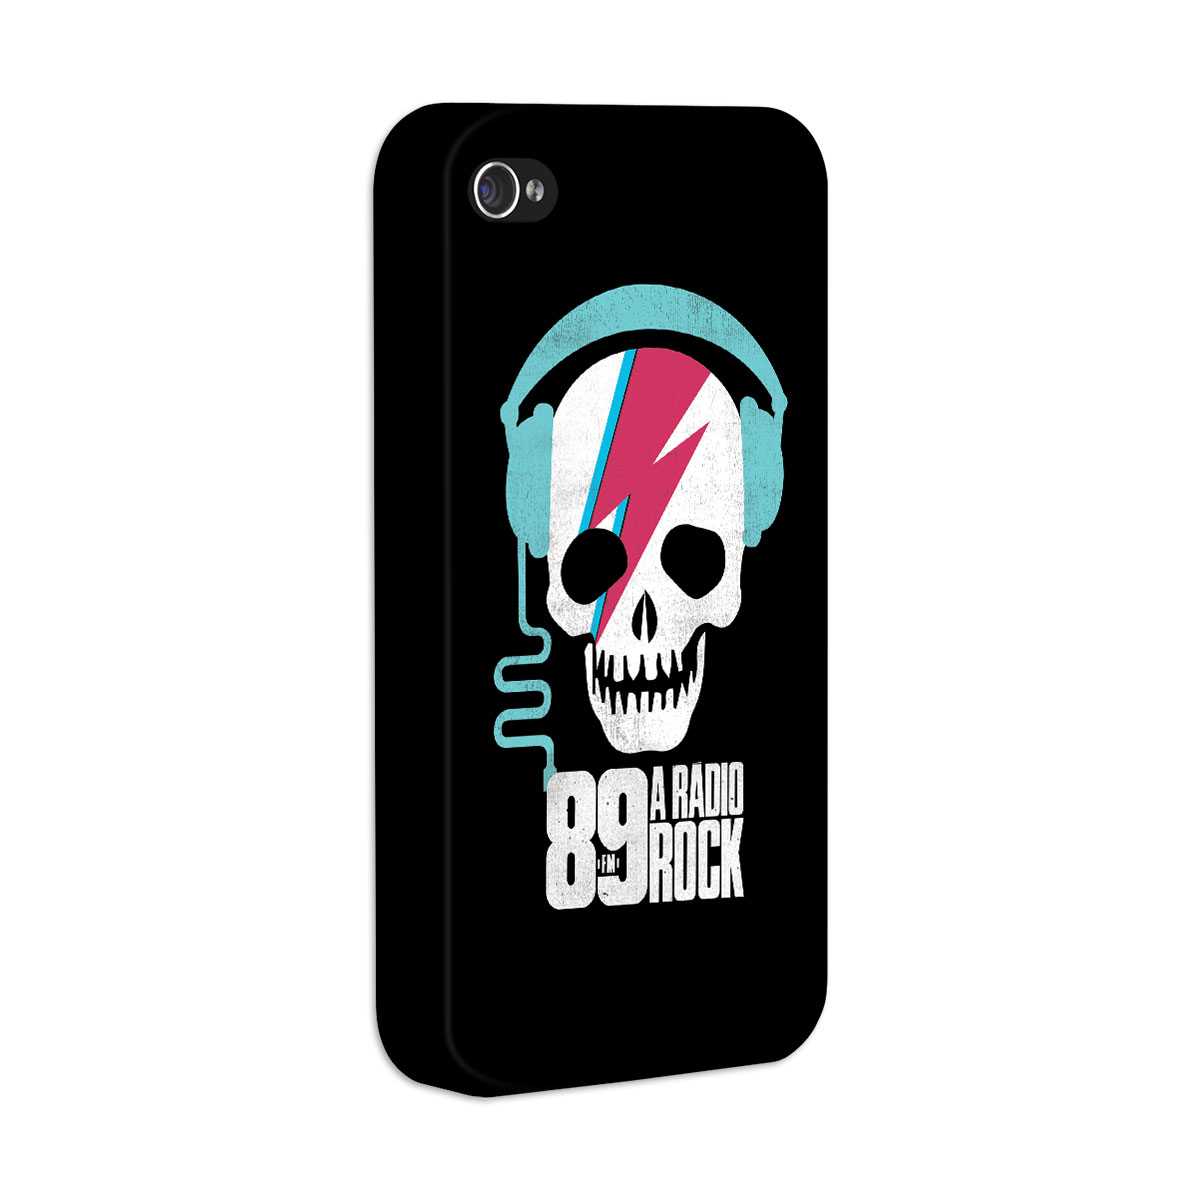 Capa de iPhone 4/4S 89 FM - Thunder Skull